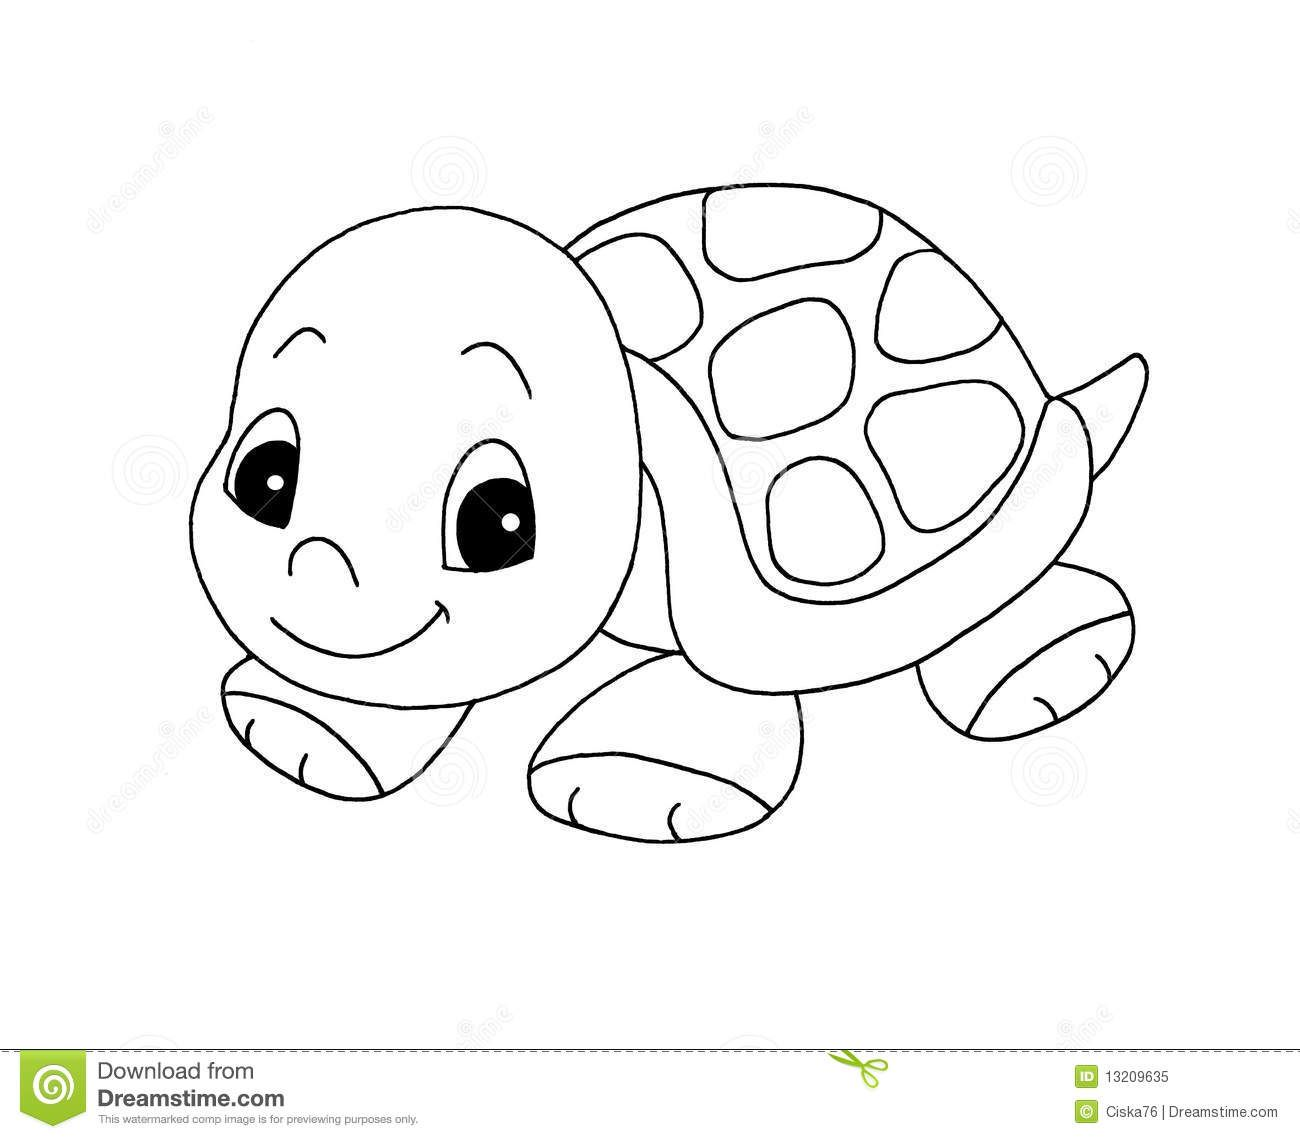 Turtle stuffed animal clipart black and white clipart transparent library Box turtles are How to Draw a Turtle of a deer in ... clipart transparent library